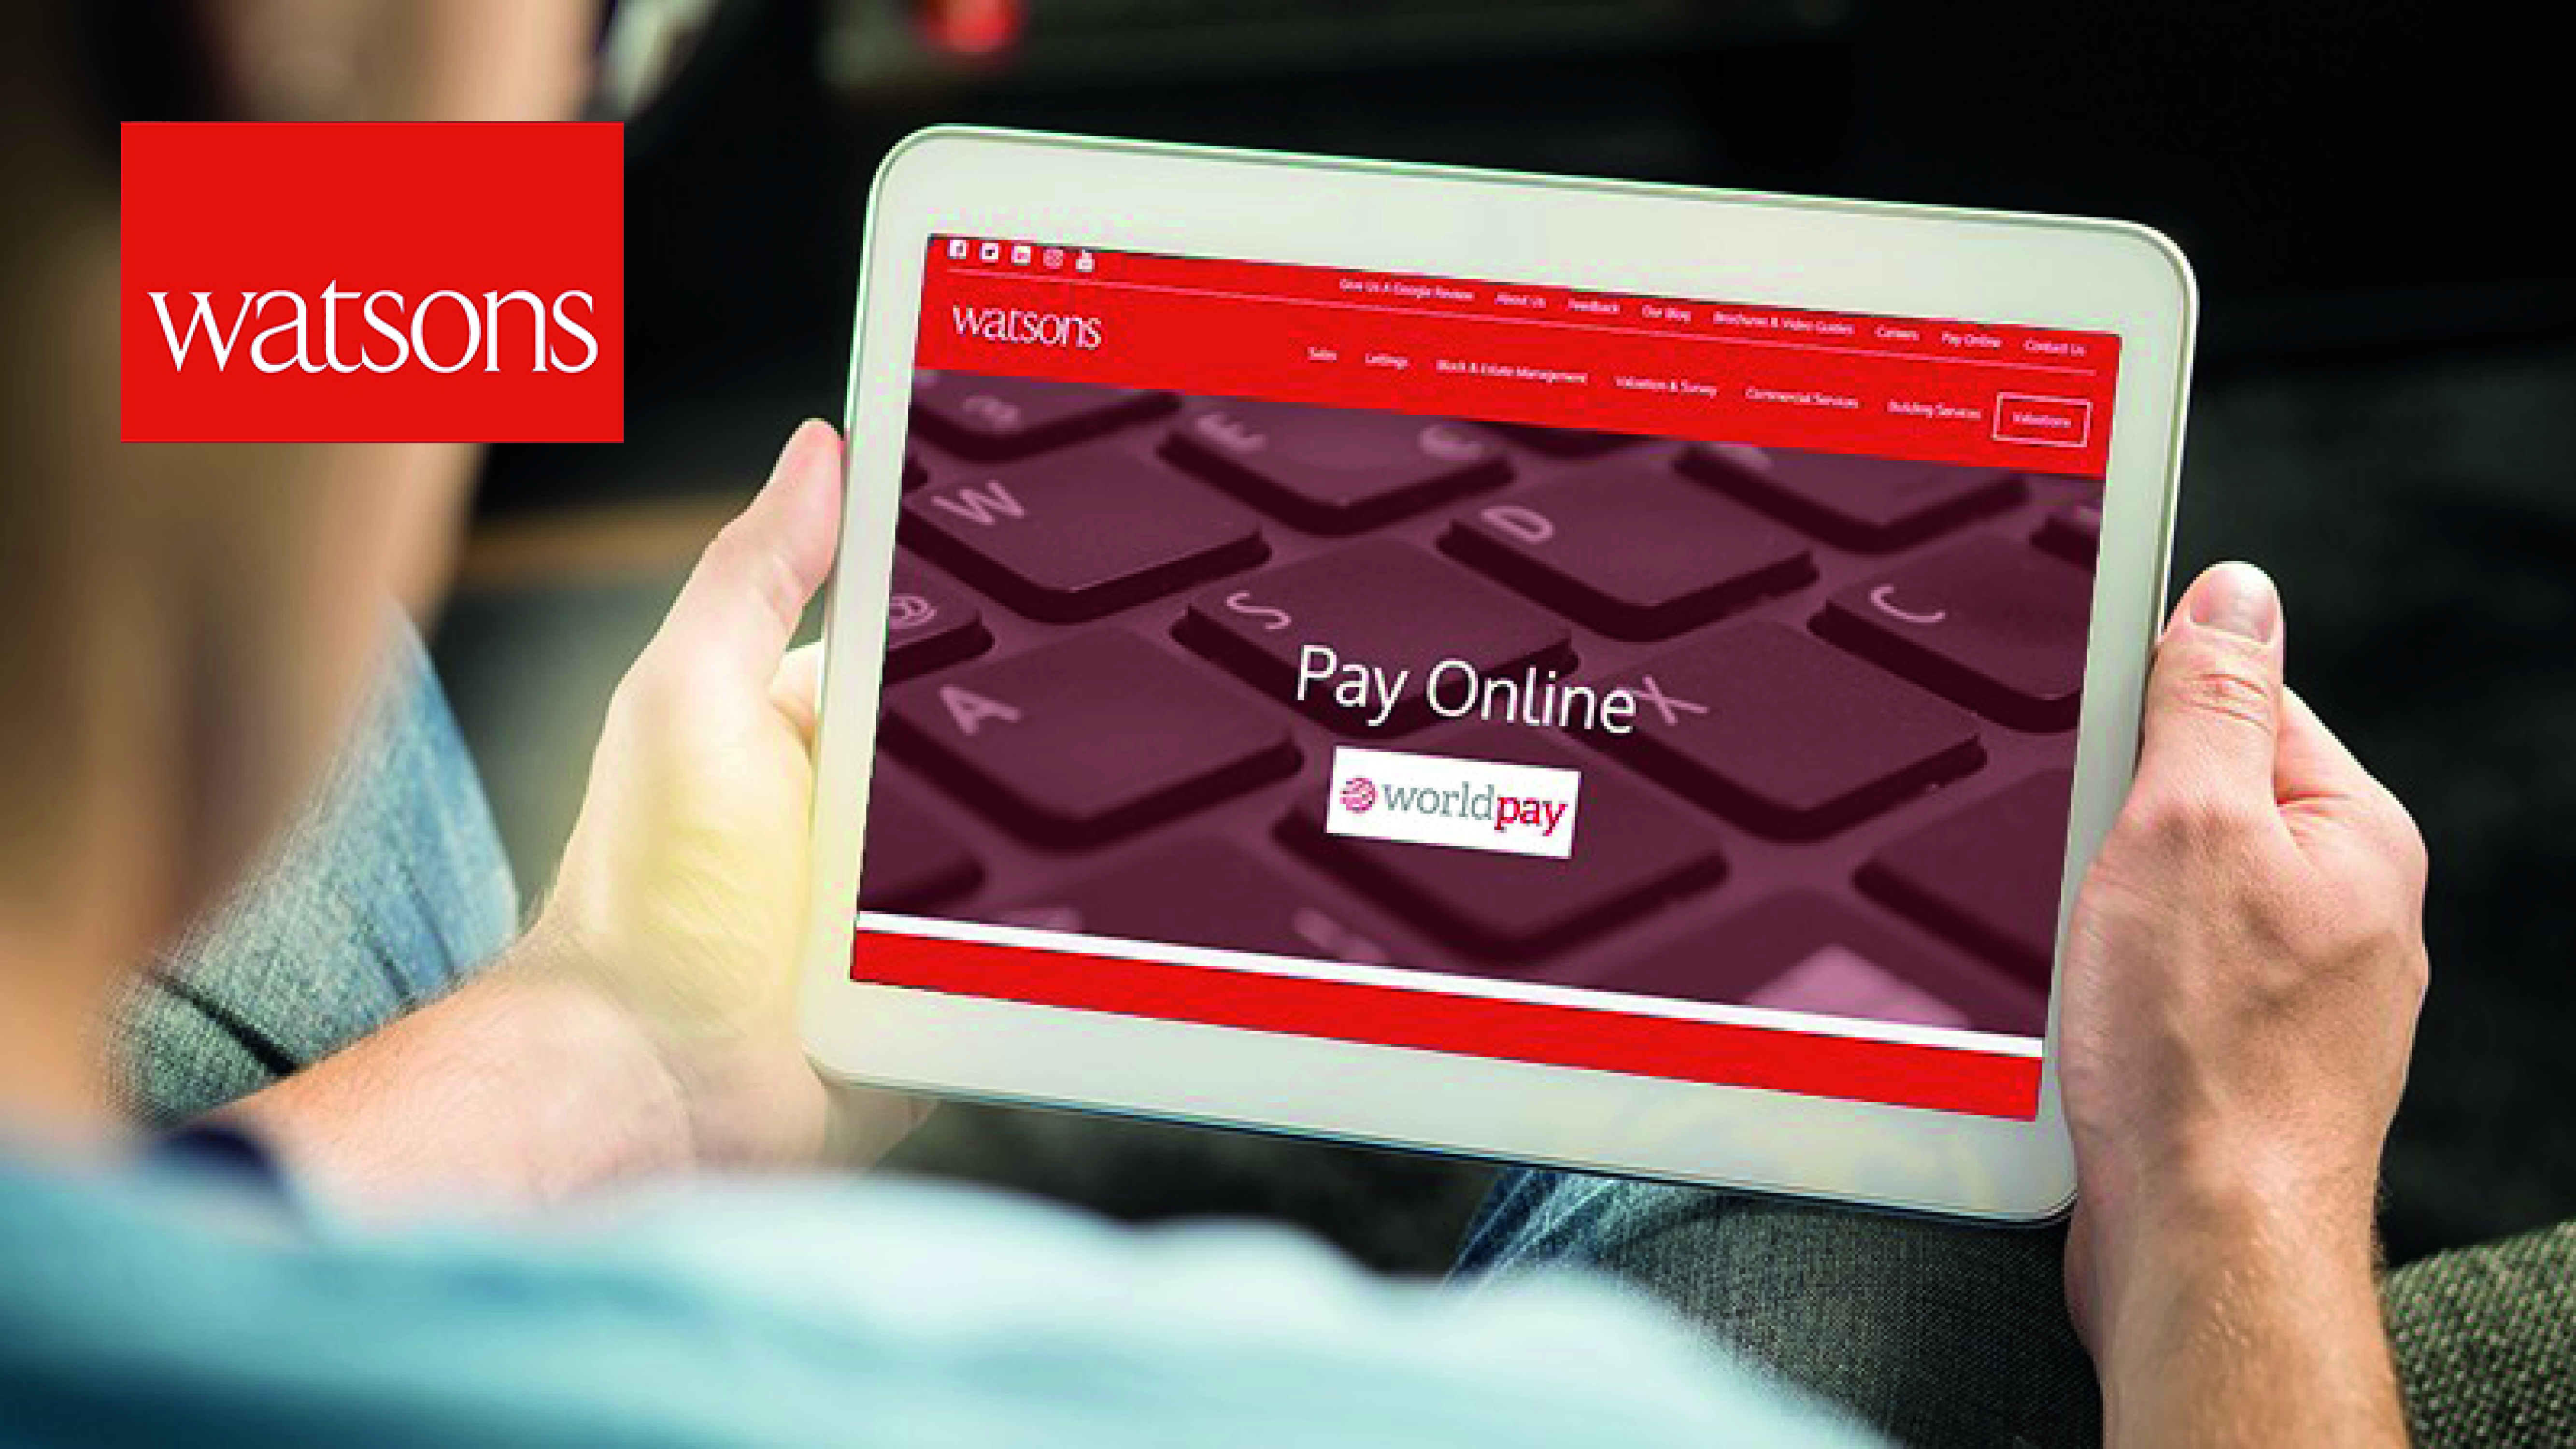 Customers Can Now Pay Online